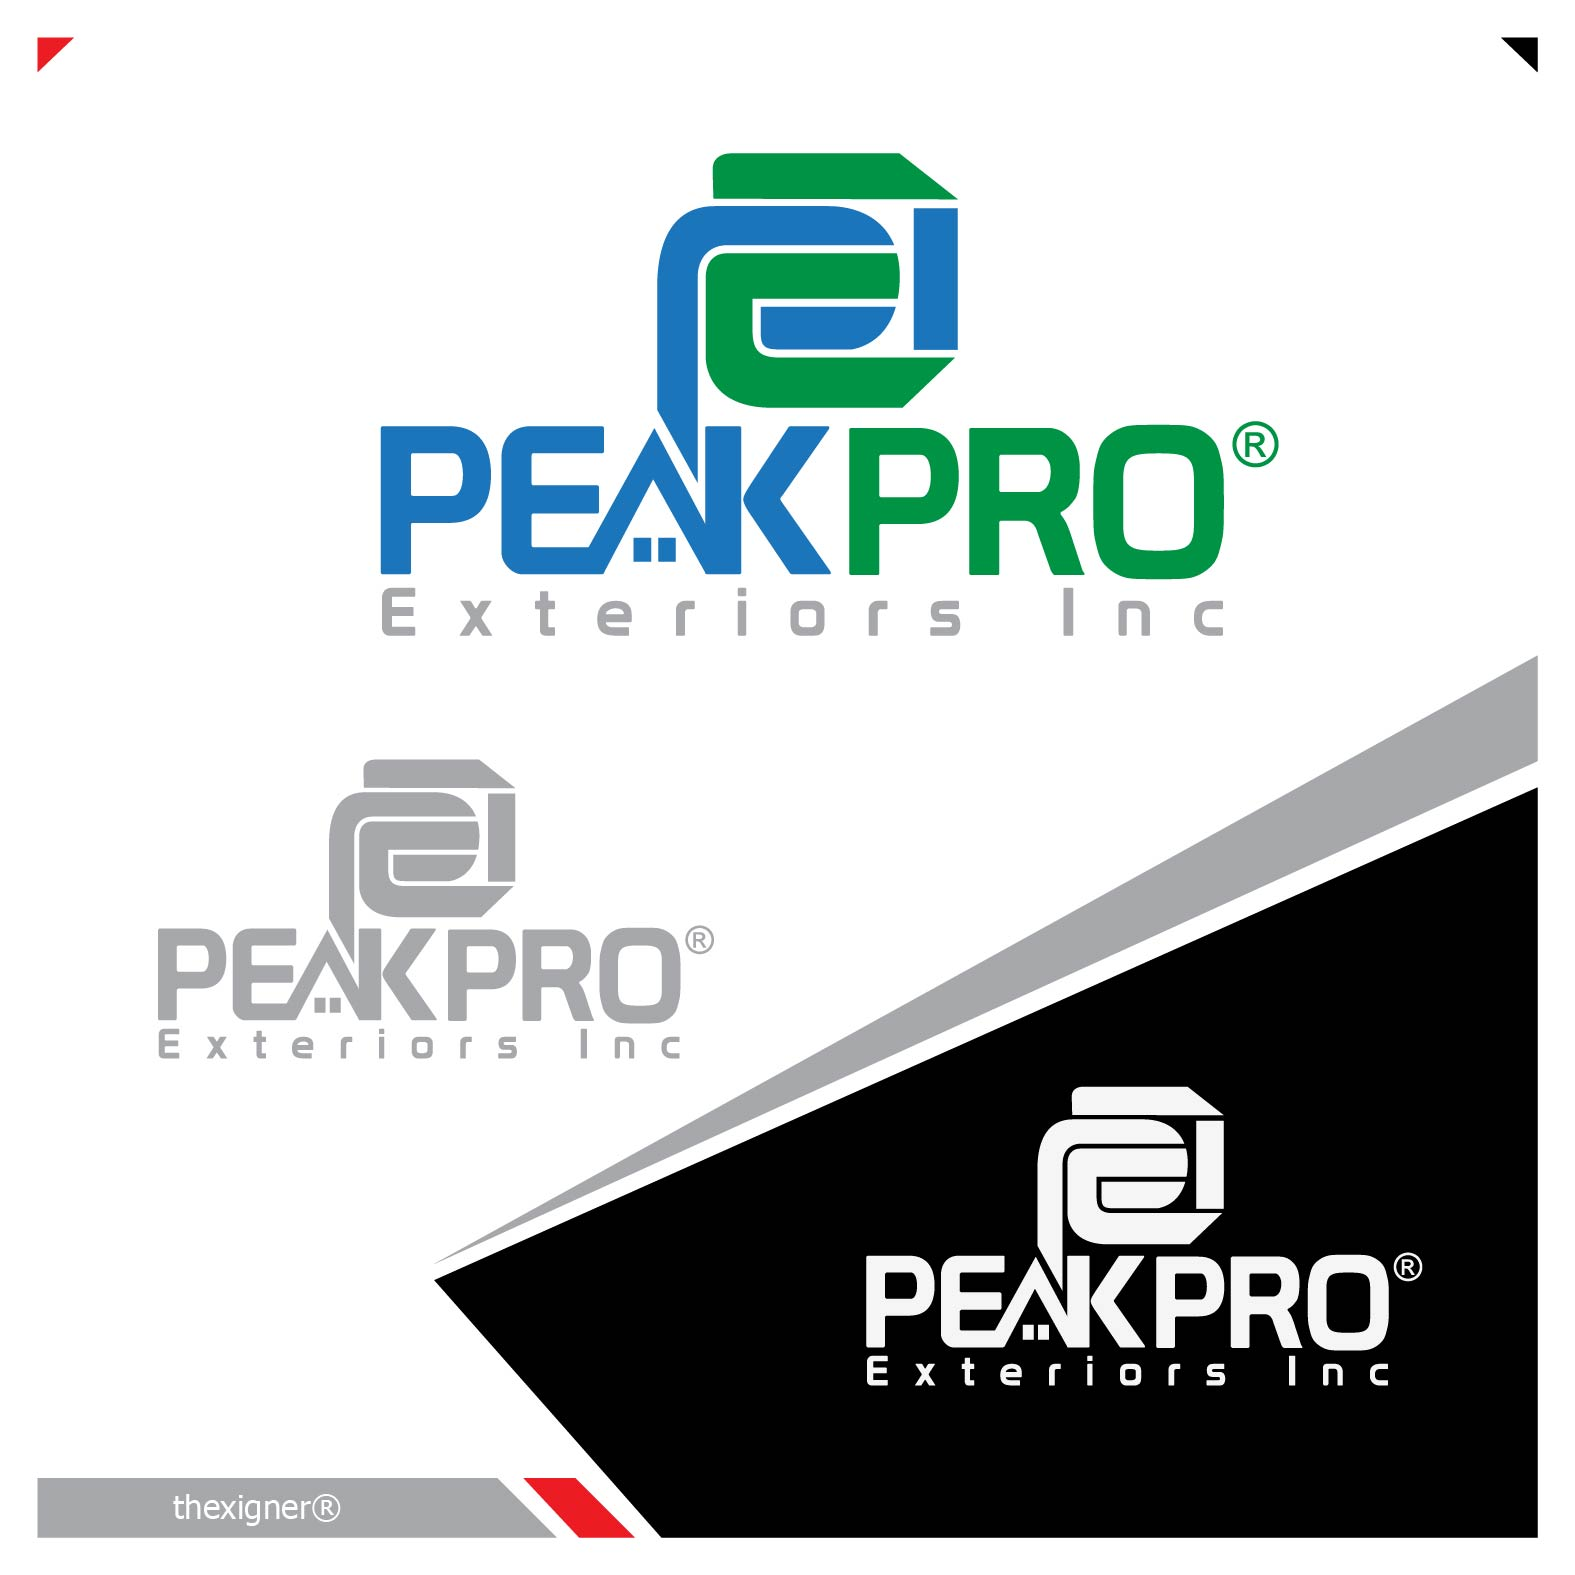 Logo Design by lagalag - Entry No. 5 in the Logo Design Contest Captivating Logo Design for Peakpro Exteriors Inc..